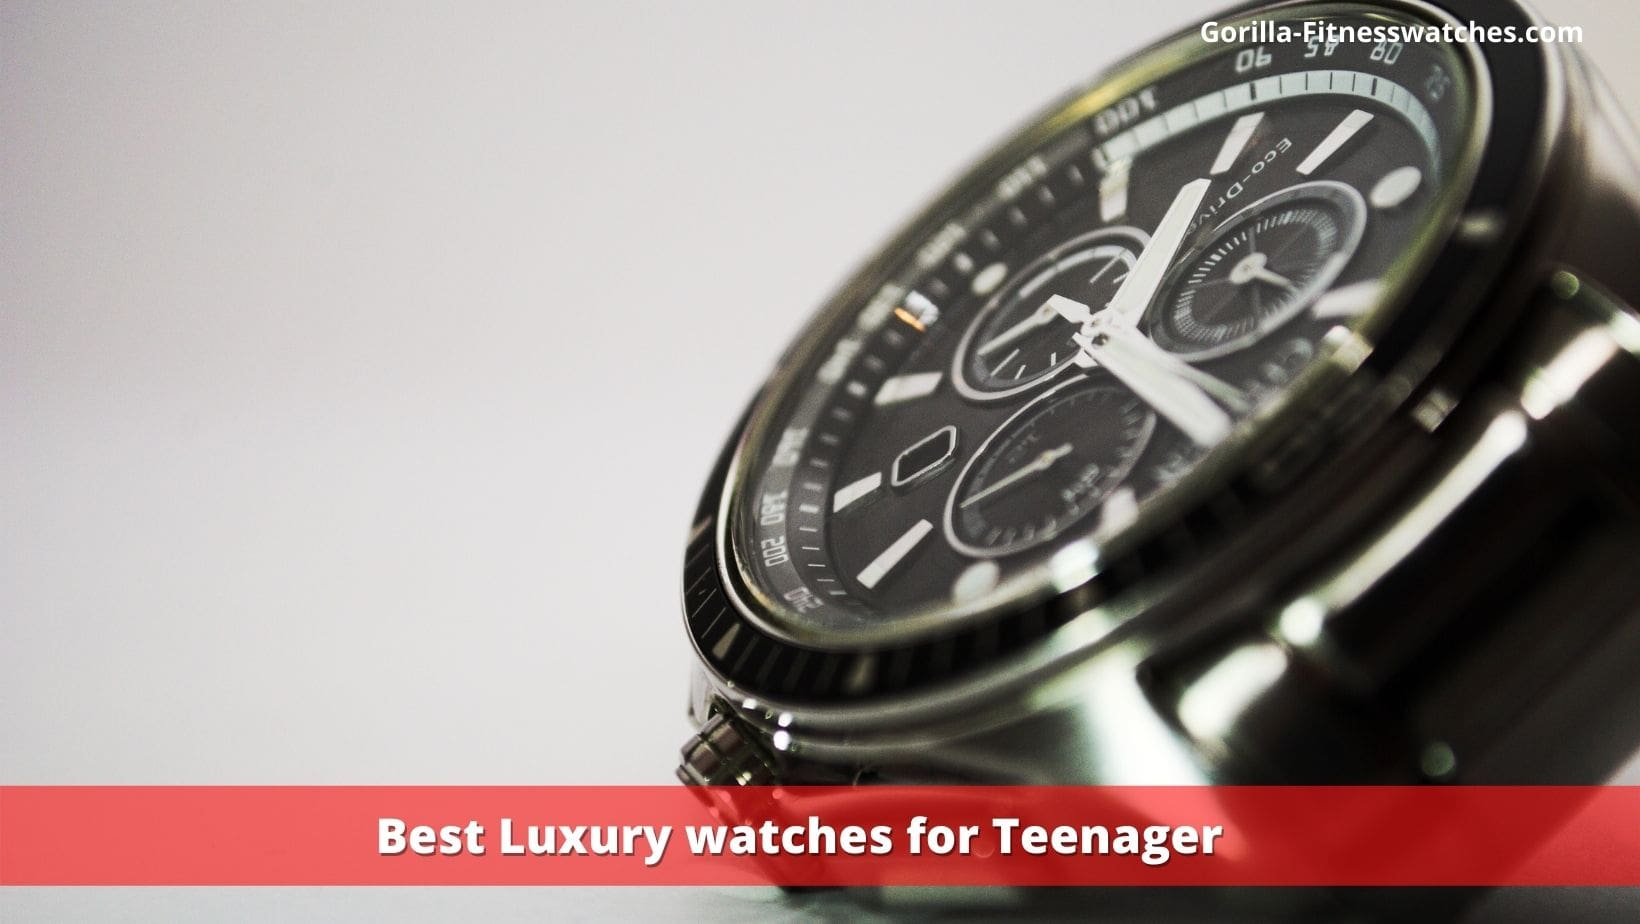 Best Luxury watches for Teenager